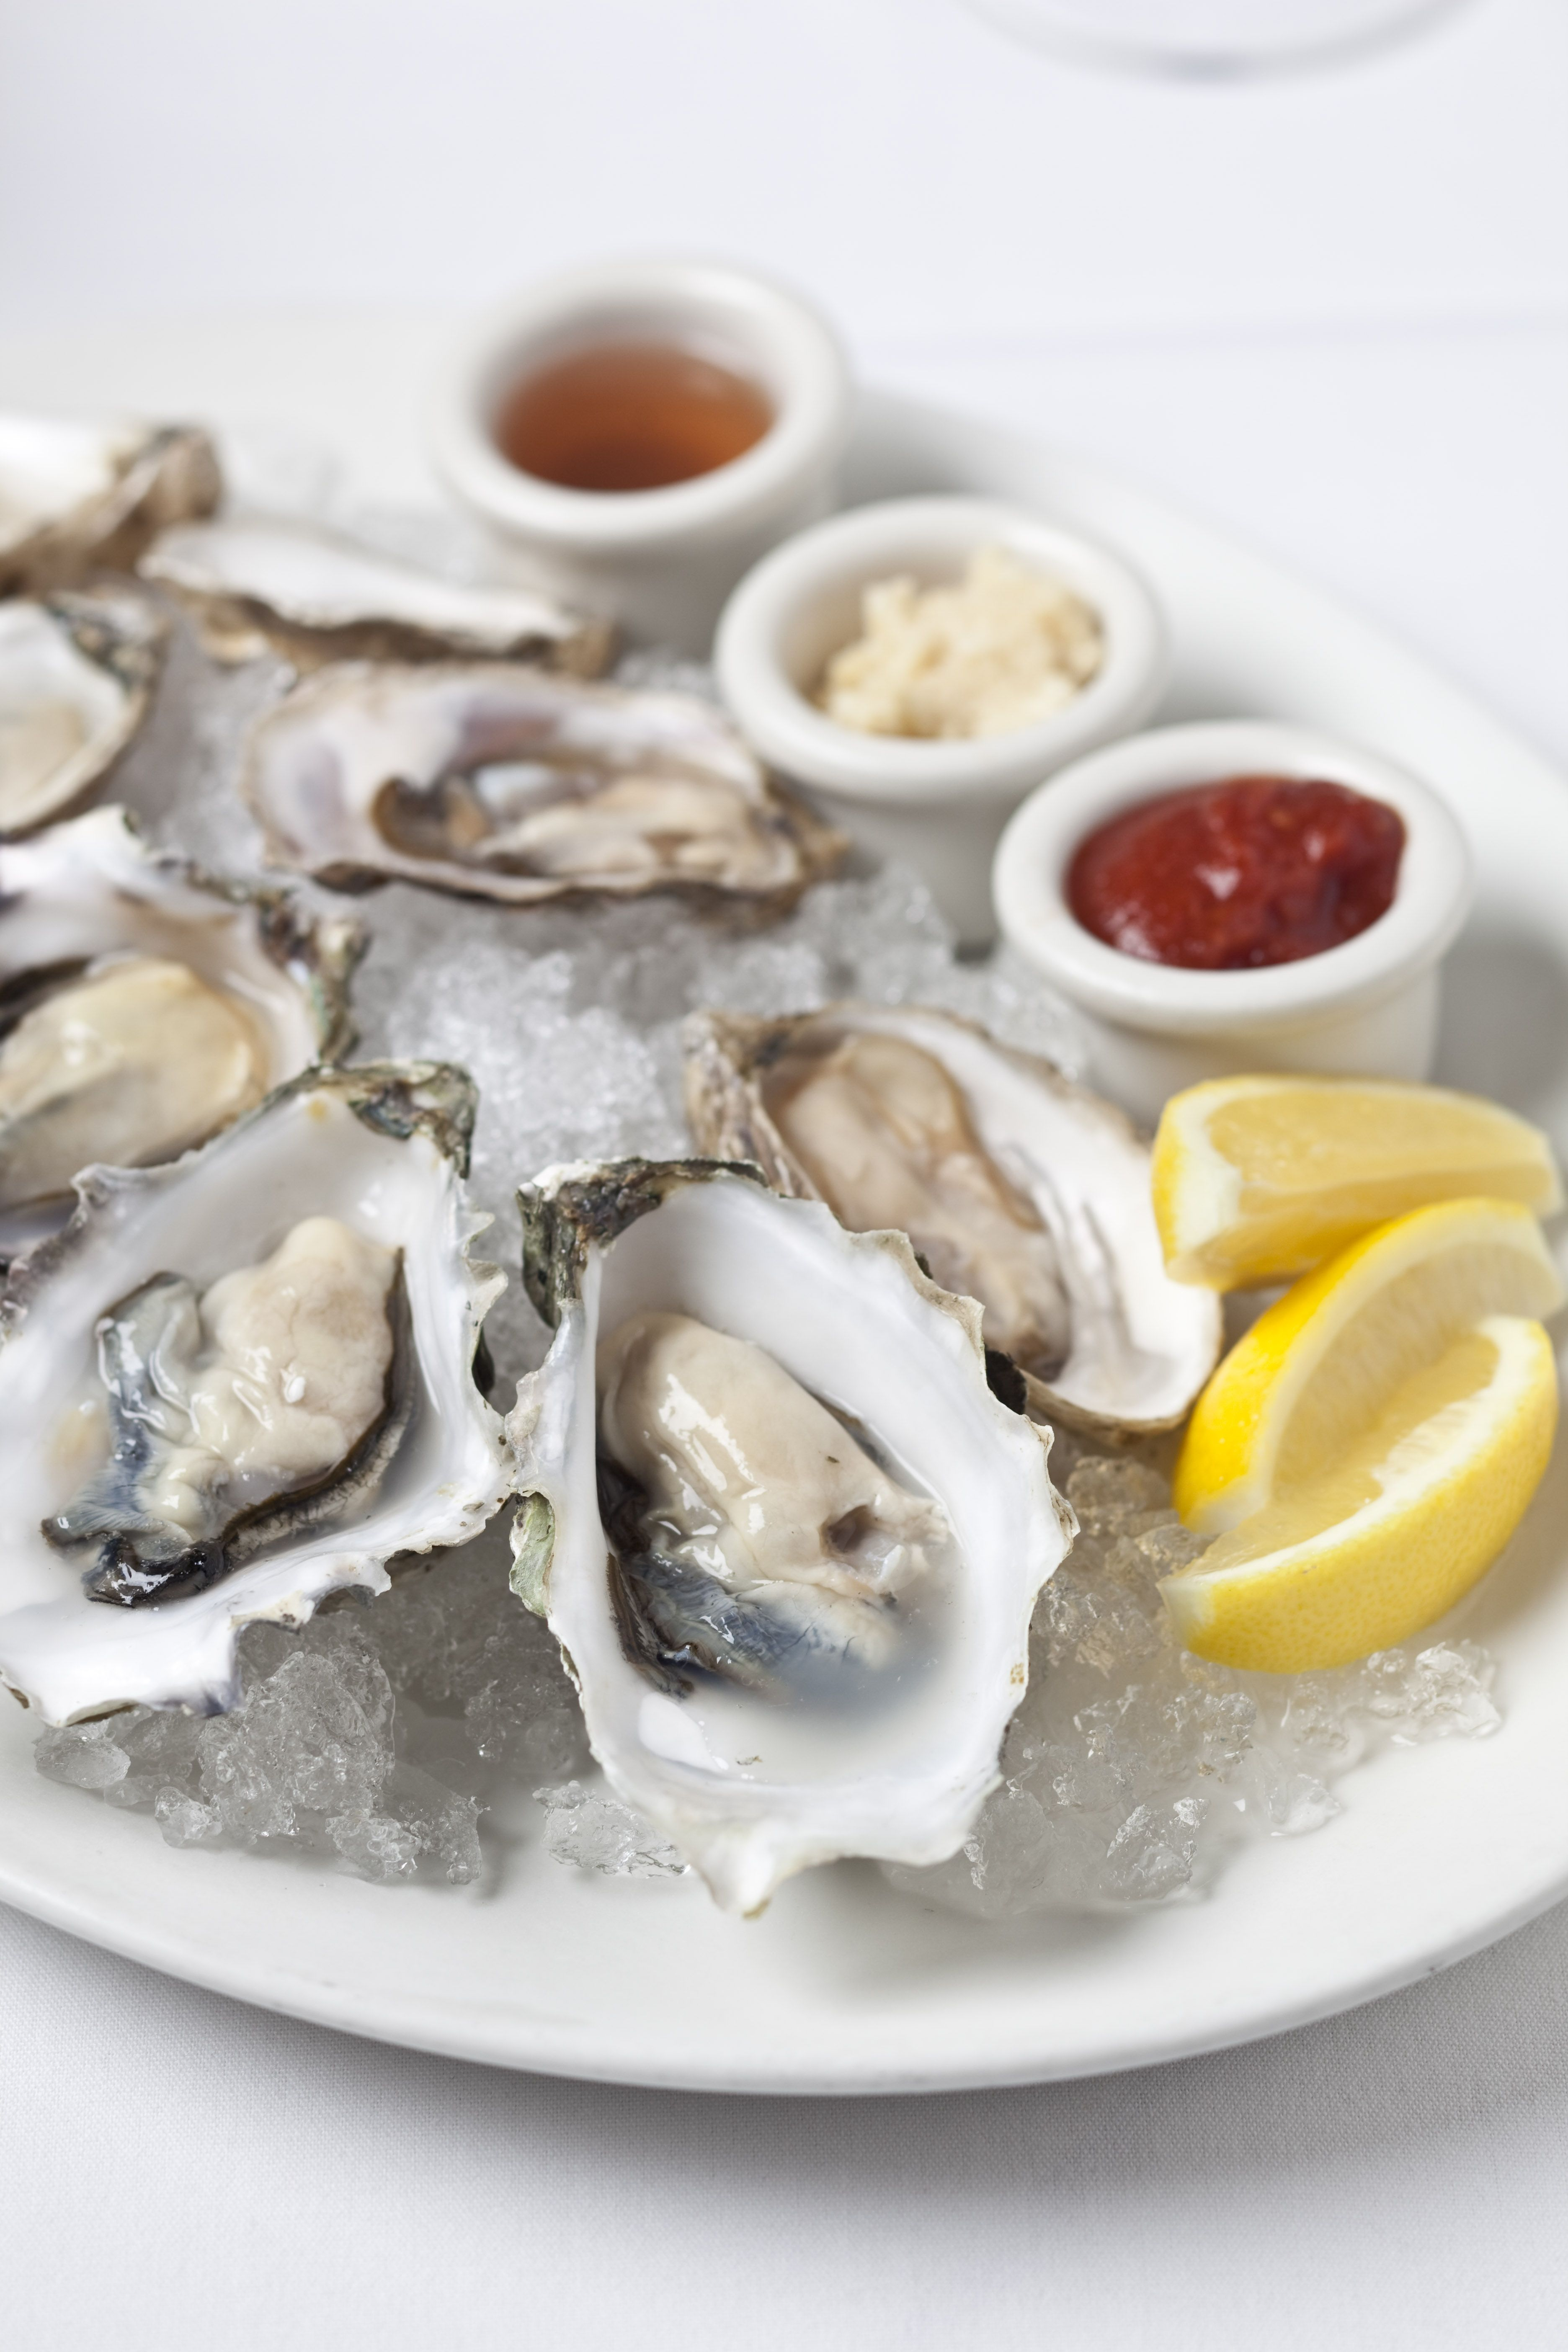 801 Fish Is Now Offering An Oyster Thursday Menu Come In Out Of The Cold And Try It Food Food Preparation Kc Restaurants